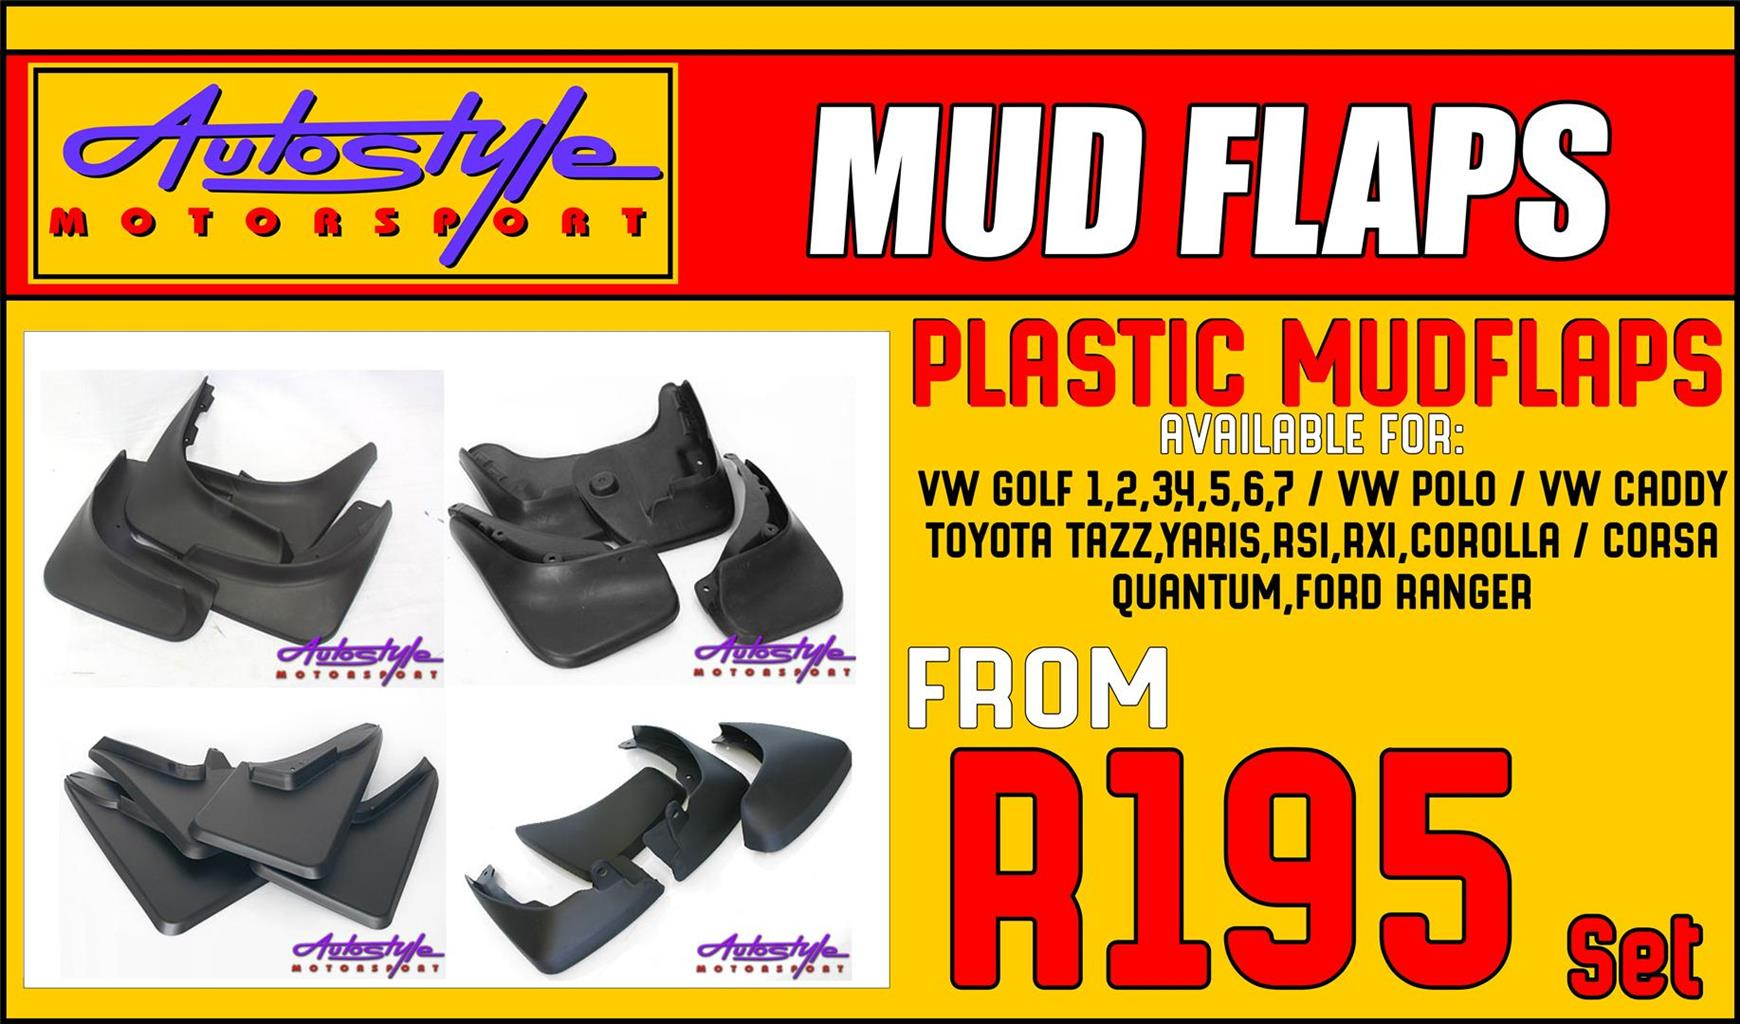 mudflaps set of 4 for most cars, stone guards, plastic and rubber, vw, golf, gti, caddy, ranger, etc